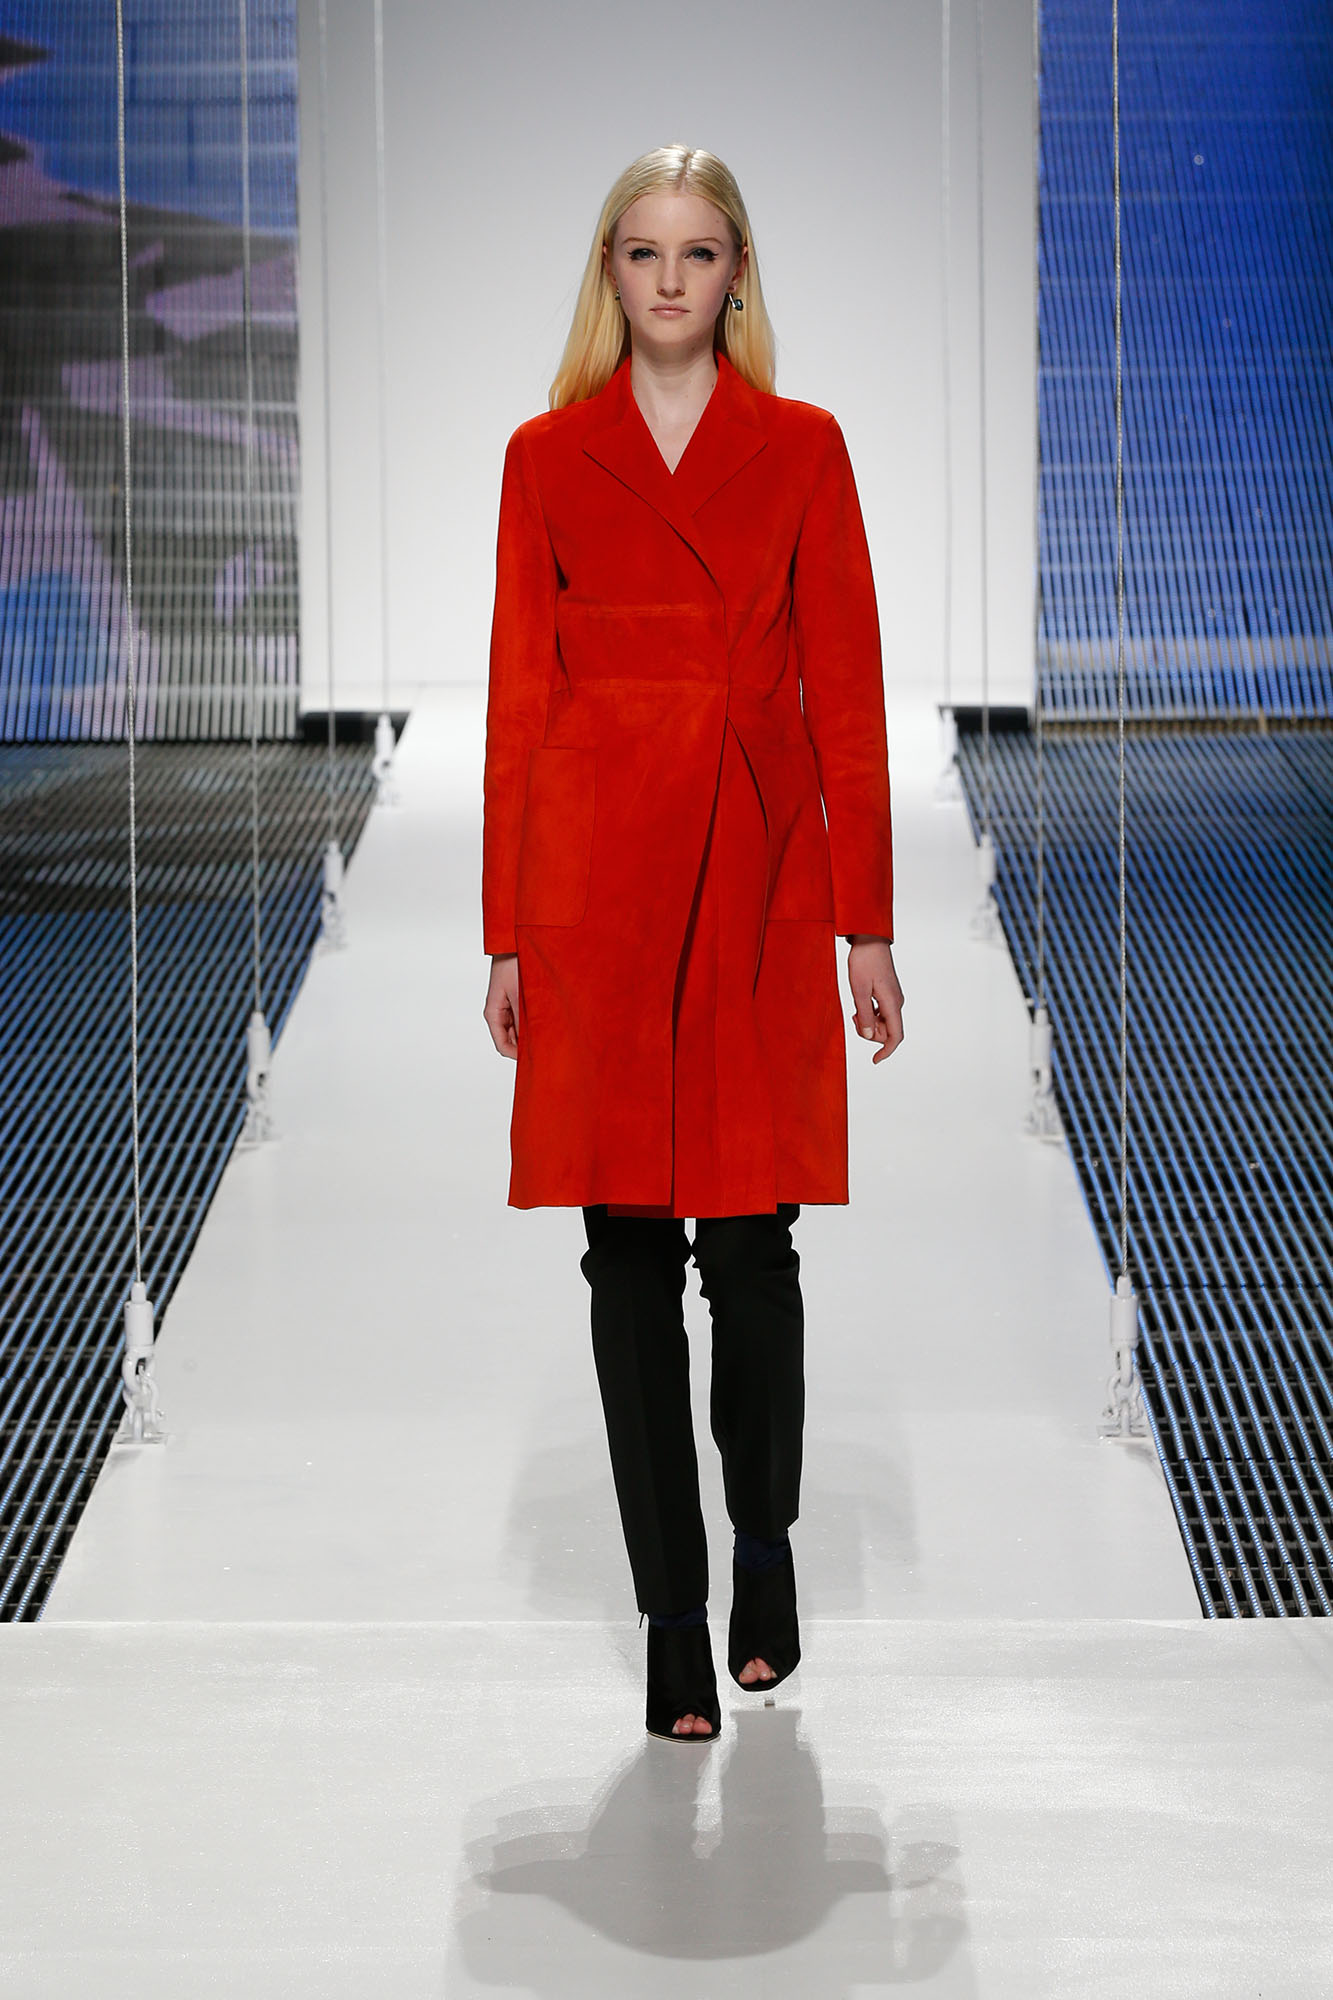 christian-dior-fall-winter-cruise-collection (12)